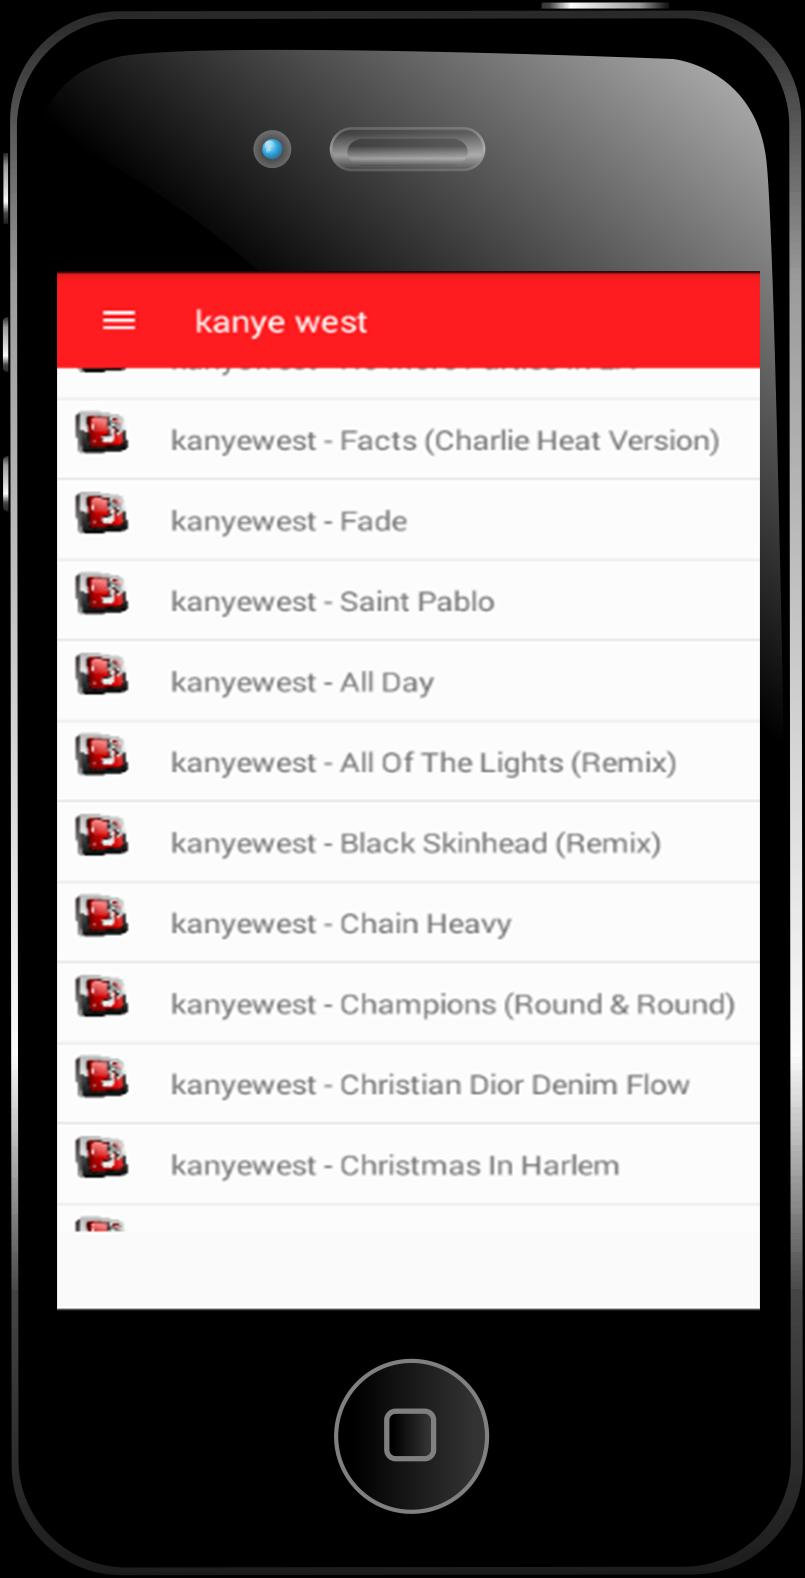 Kanye West - Fade Songs for Android - APK Download